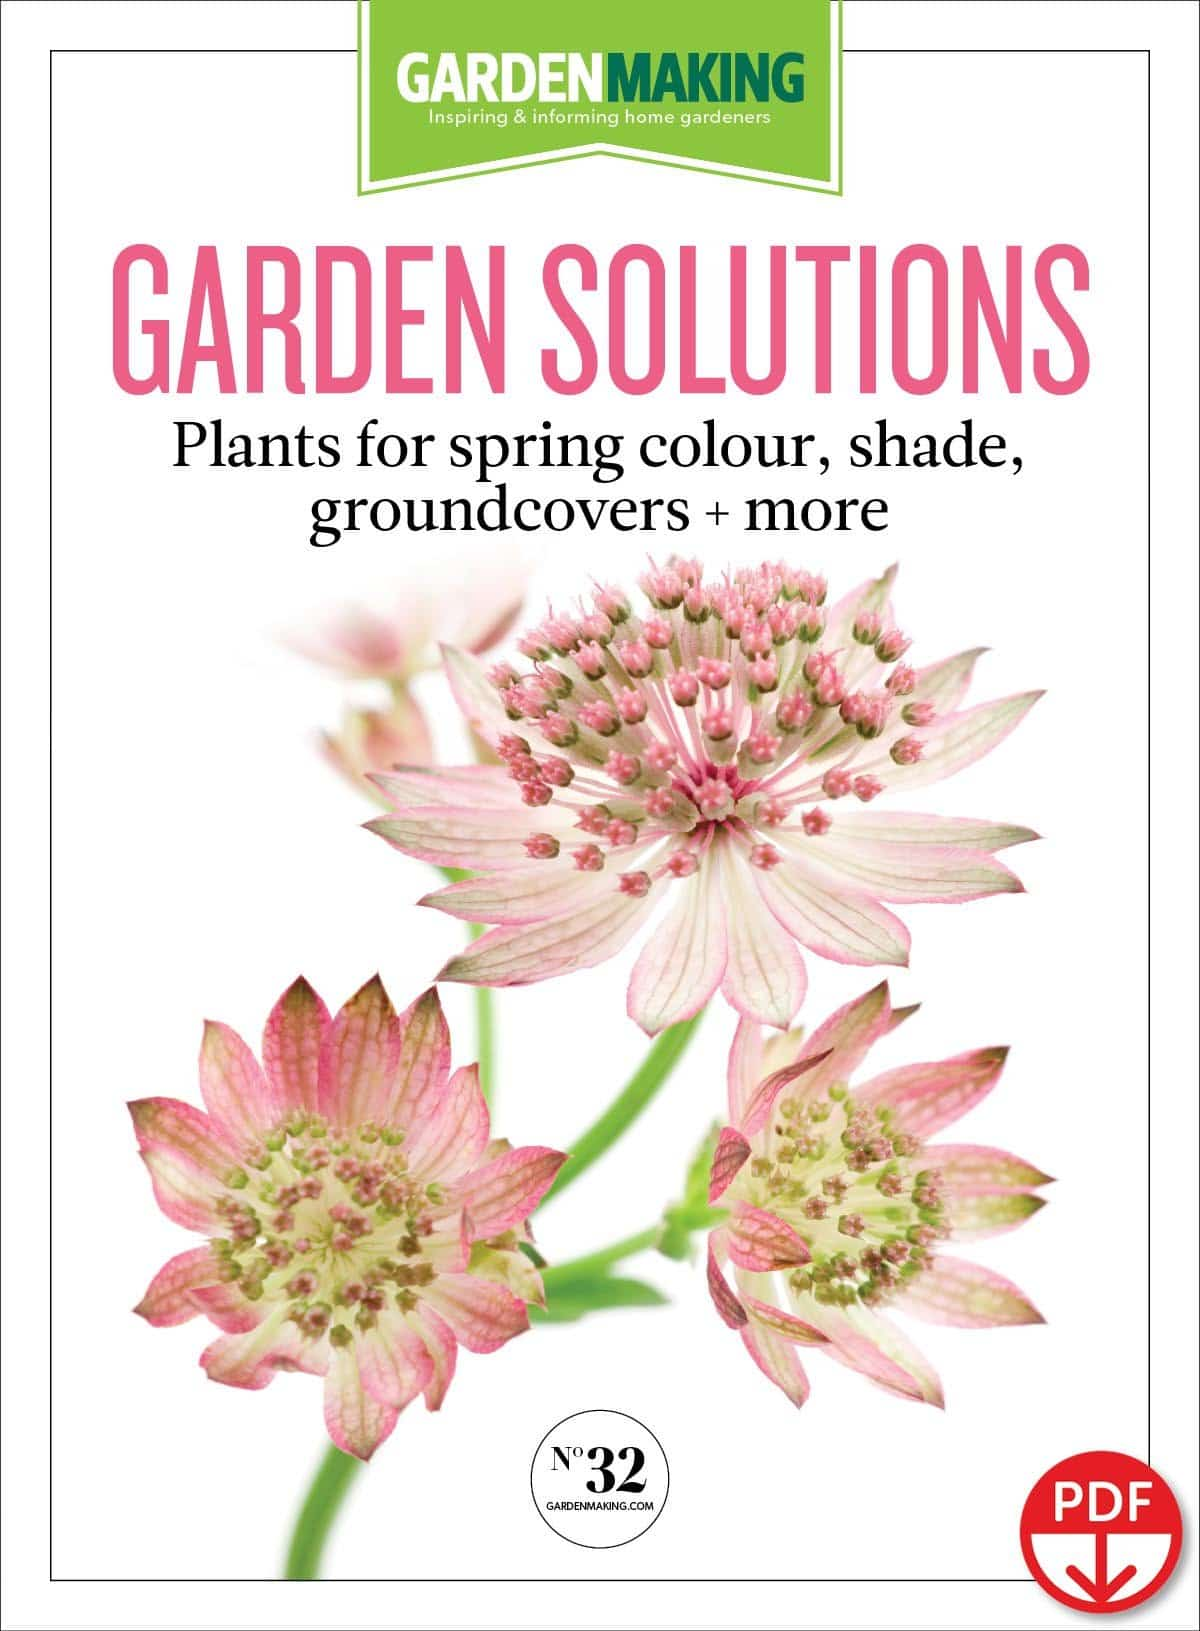 gardenmaking Garden Solutions